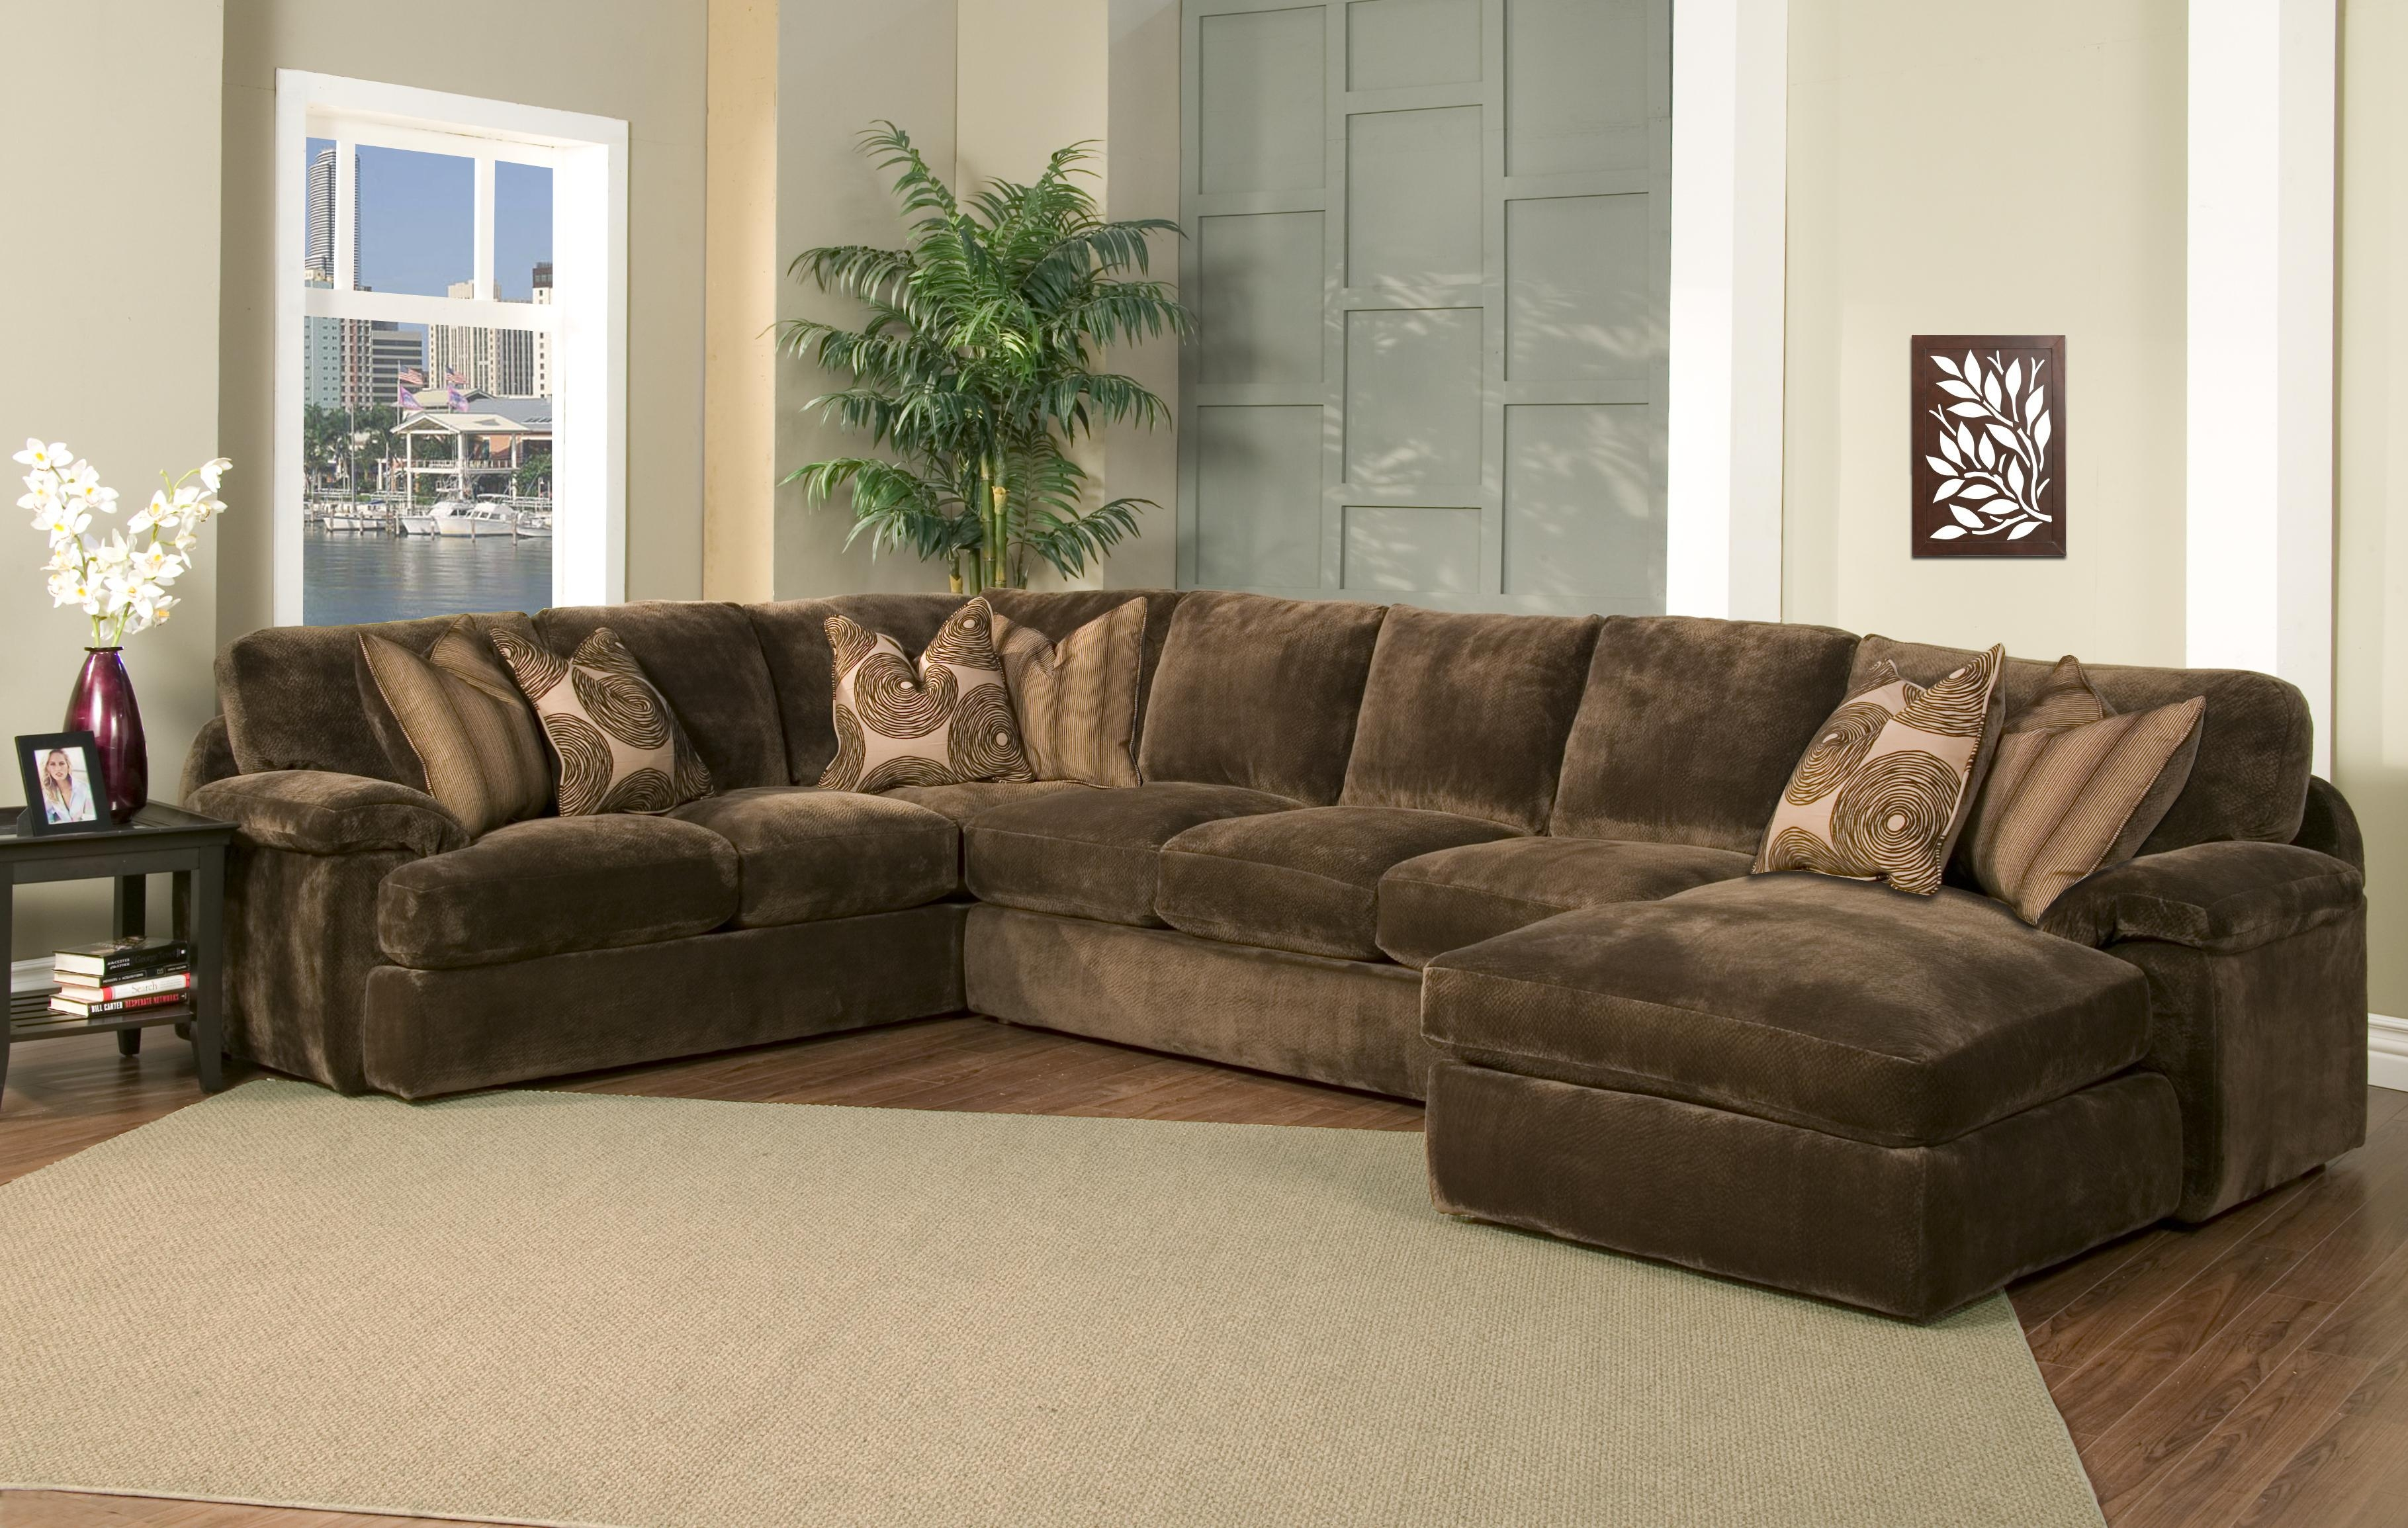 Robert Michaels Sofas And Sectionals With Down Filled Sofas And Sectionals (View 8 of 15)